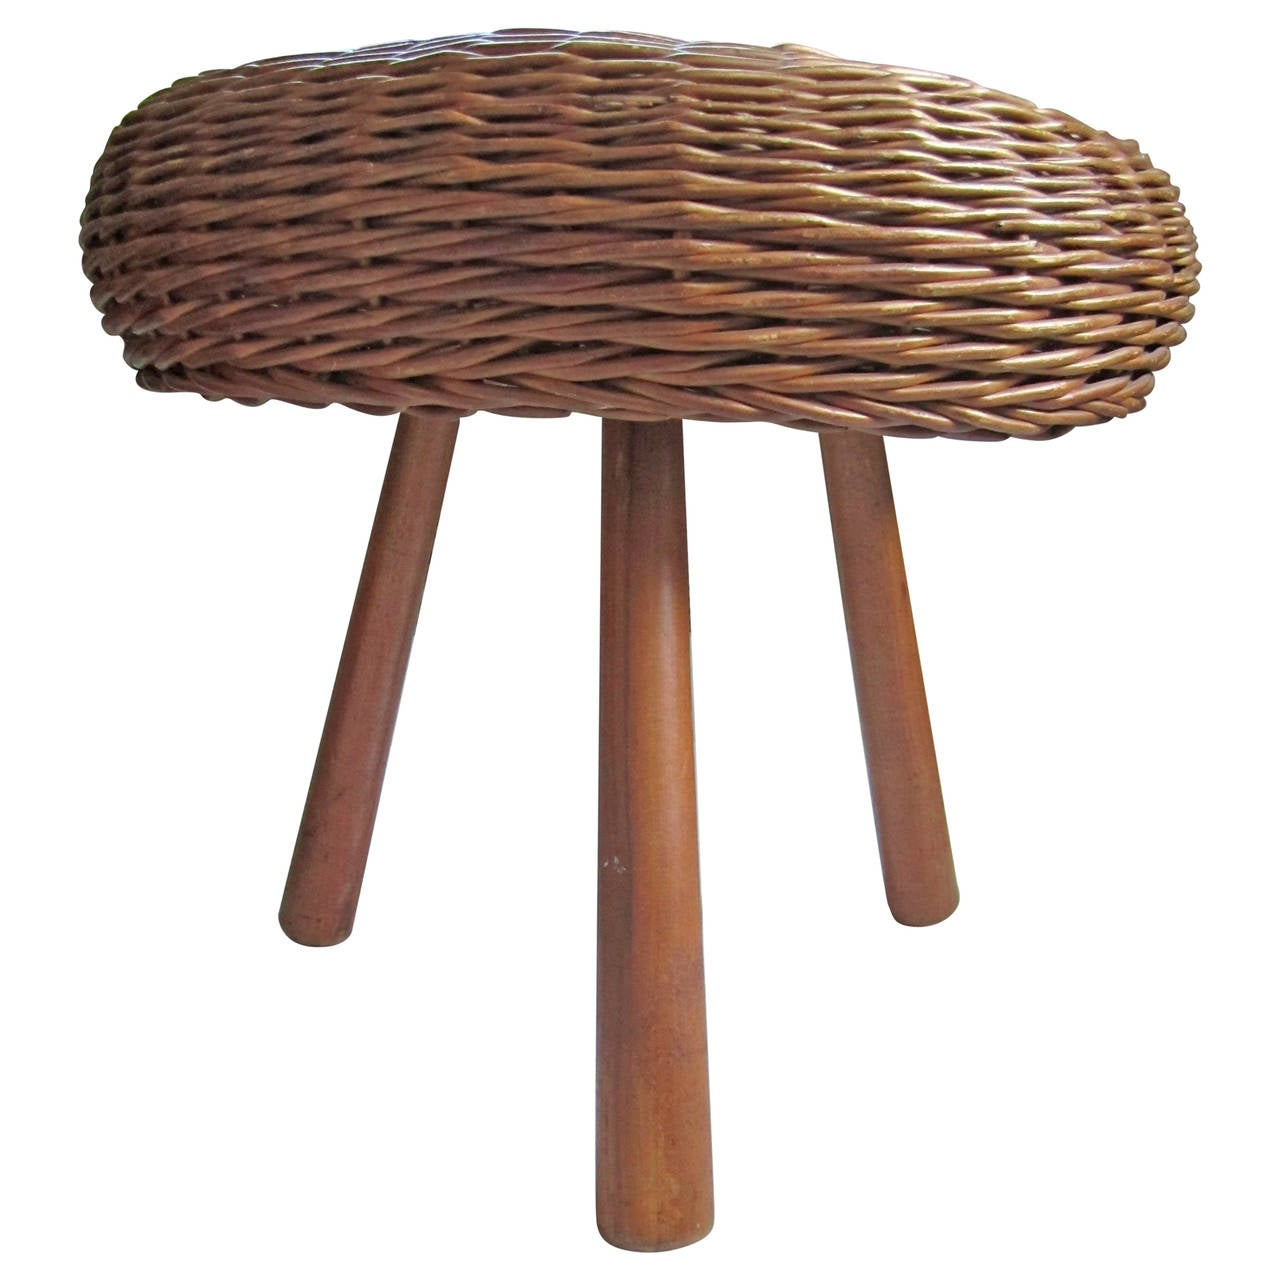 Midcentury European Wicker and Wood Stool or Side Table